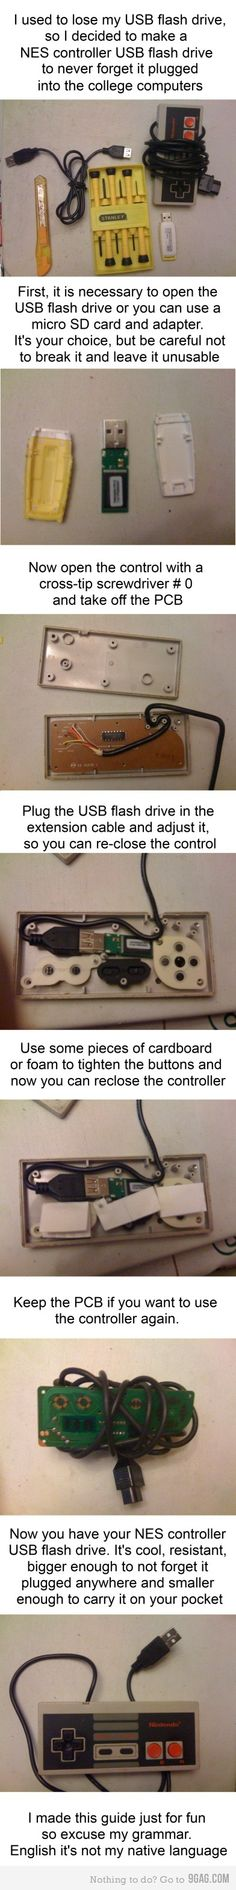 Here's a simple guide on turning your old NES controller to a usable USB mass storage device.